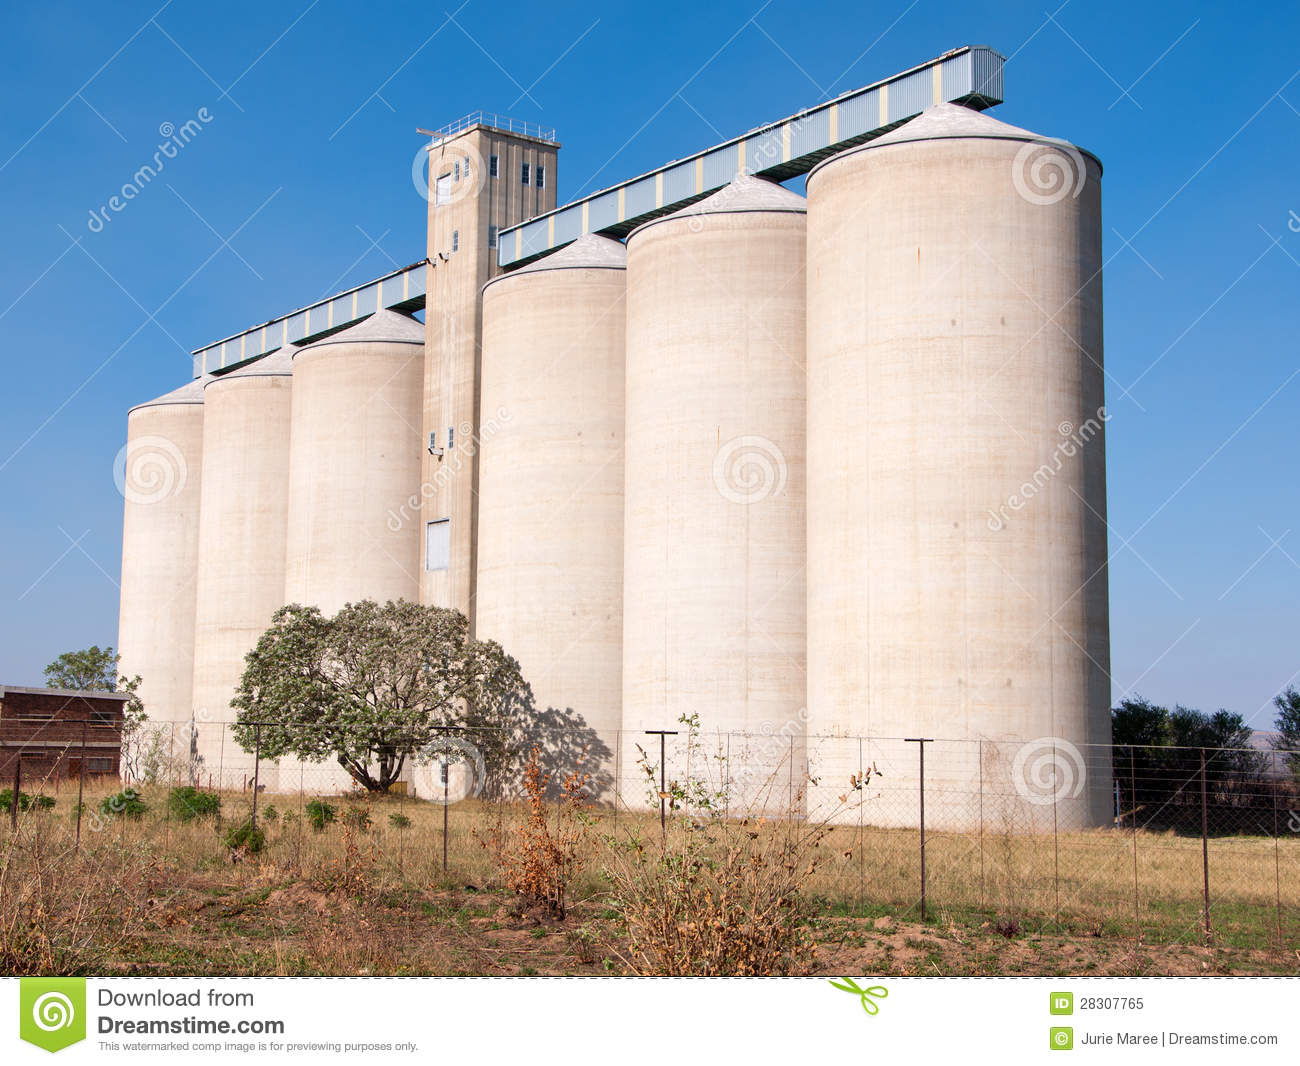 The highest grain silo clipart #20